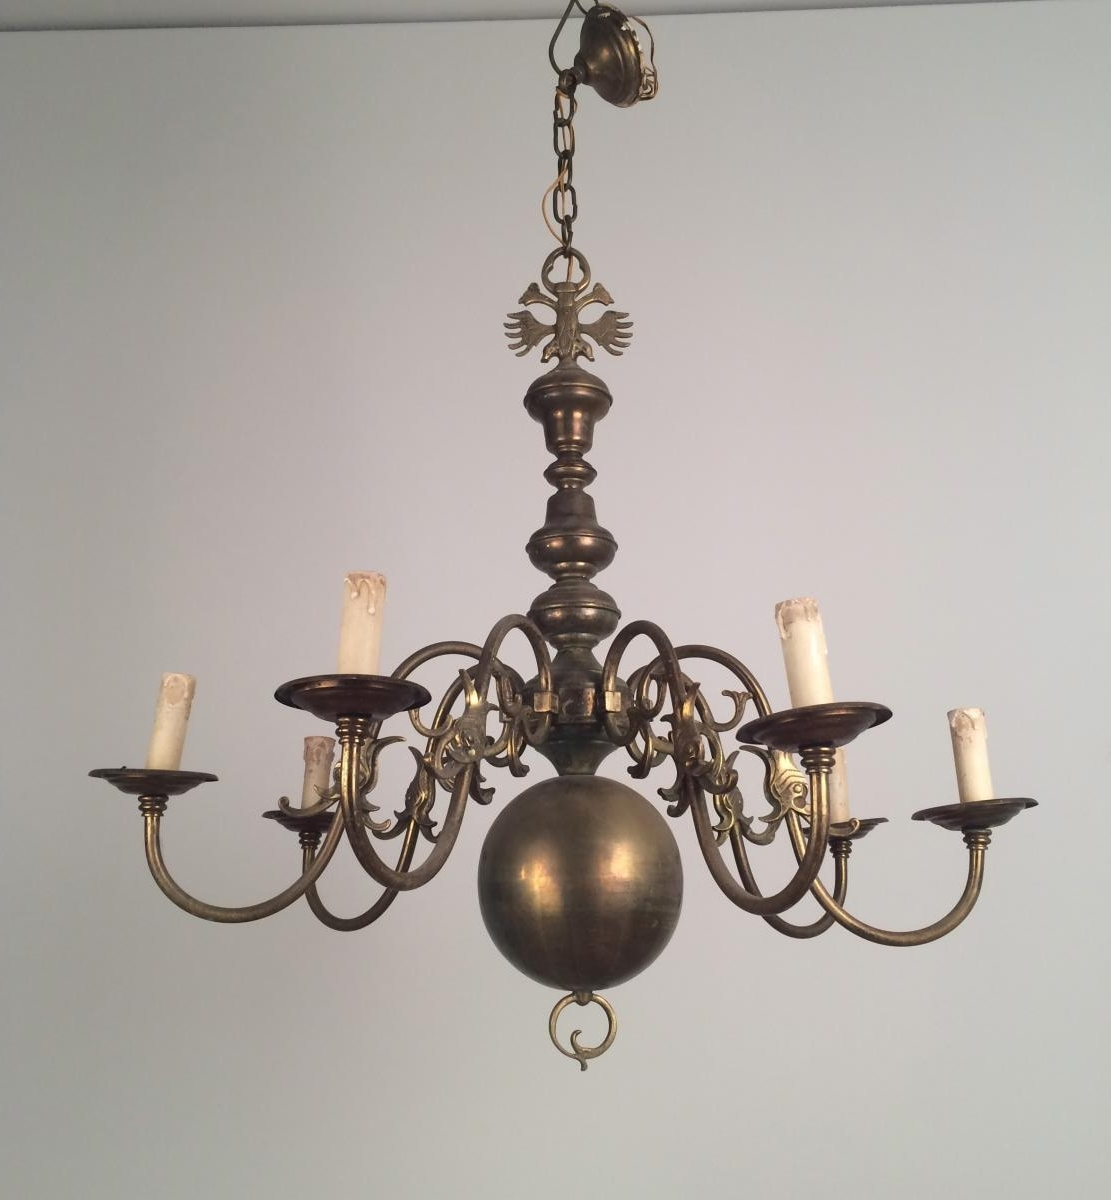 2018 Old Brass Chandelier Pertaining To Vintage Brass Chandelier – Chandelier Designs (View 2 of 20)